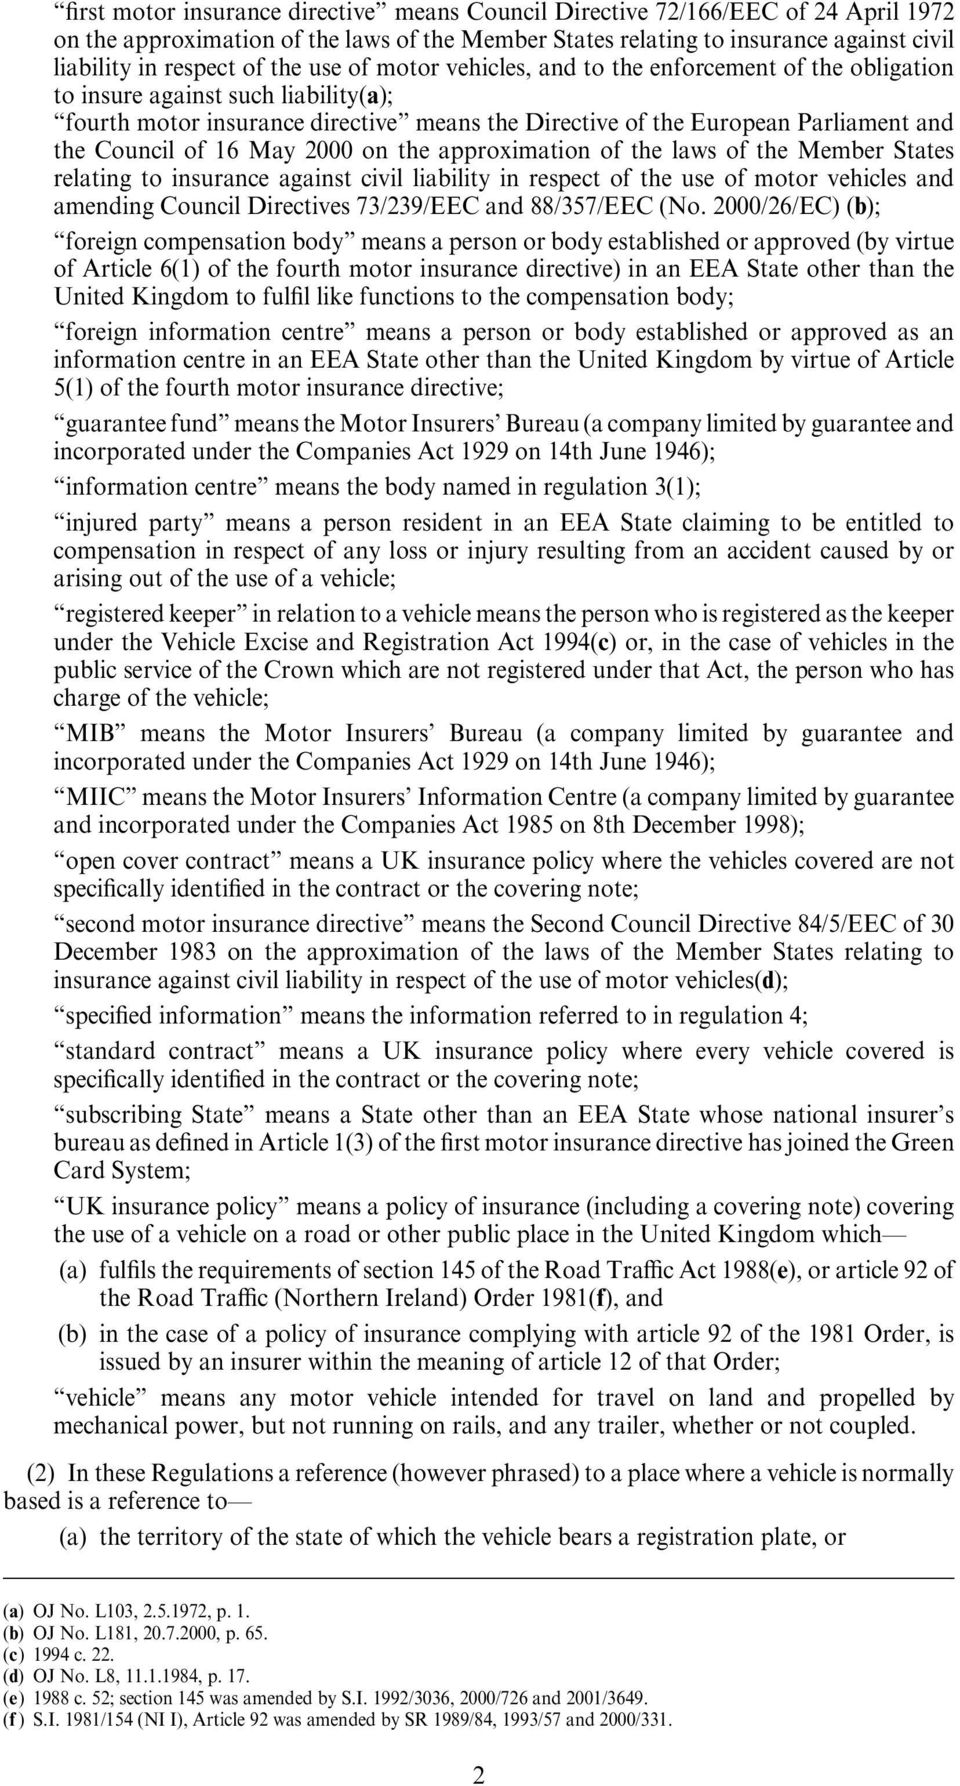 Council of 16 May 2000 on the approximation of the laws of the Member States relating to insurance against civil liability in respect of the use of motor vehicles and amending Council Directives